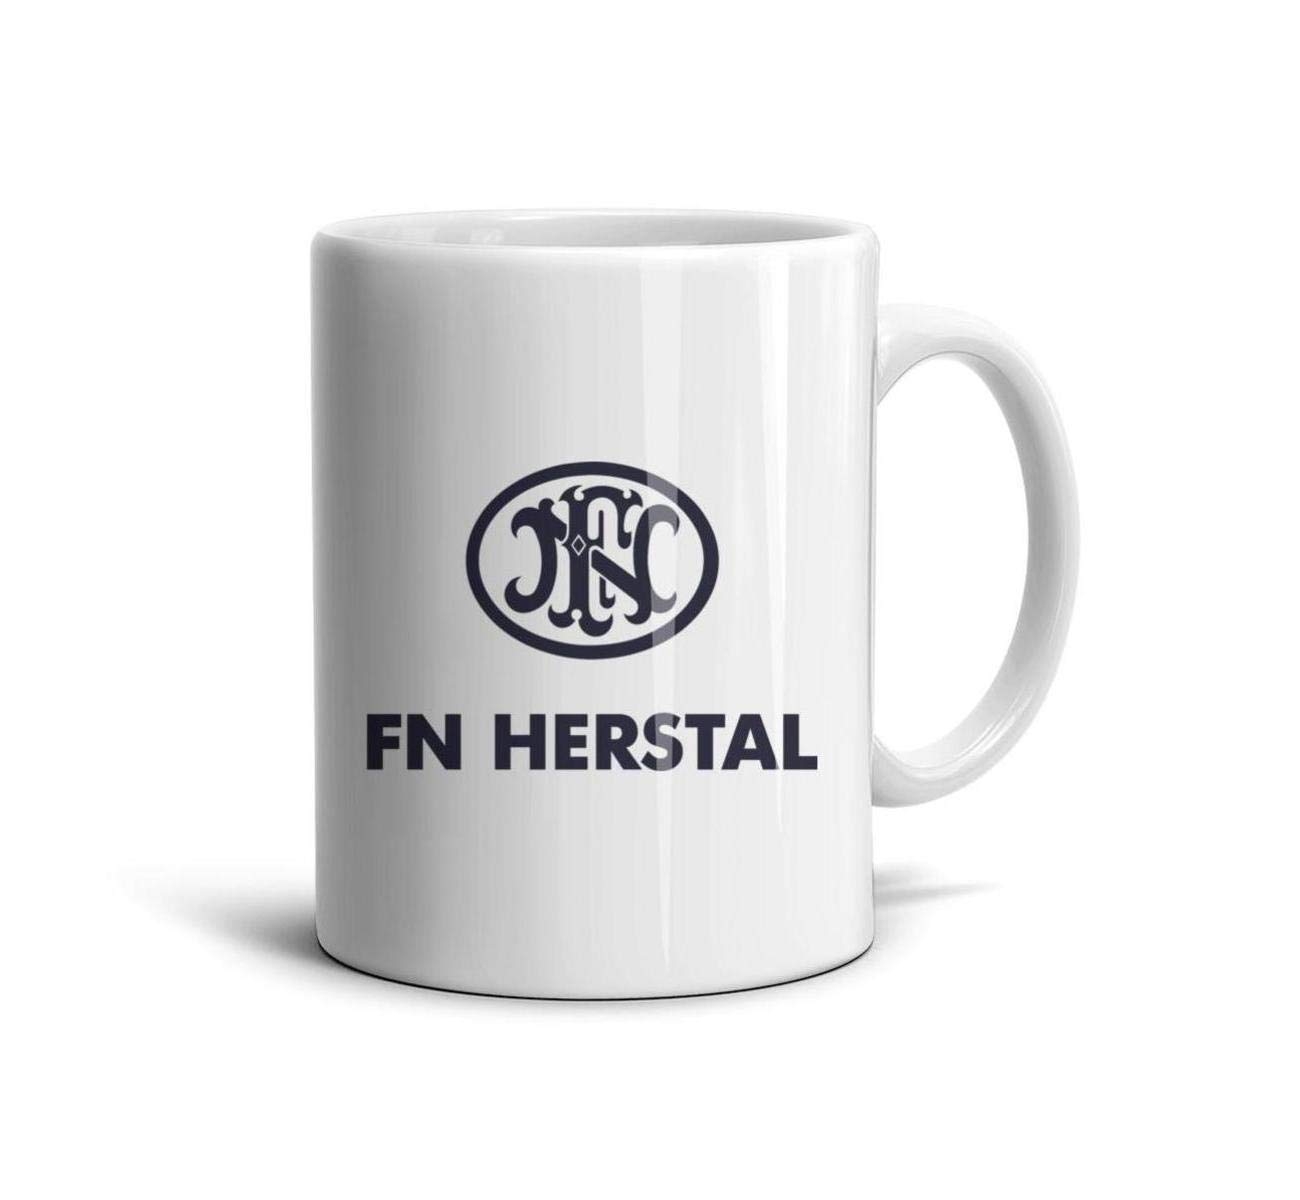 HIYITUTA Fn Herstal Mdash Coffee Mugs White Unique Mug 11 Oz Weddings Mugs Boyfriend Birthday